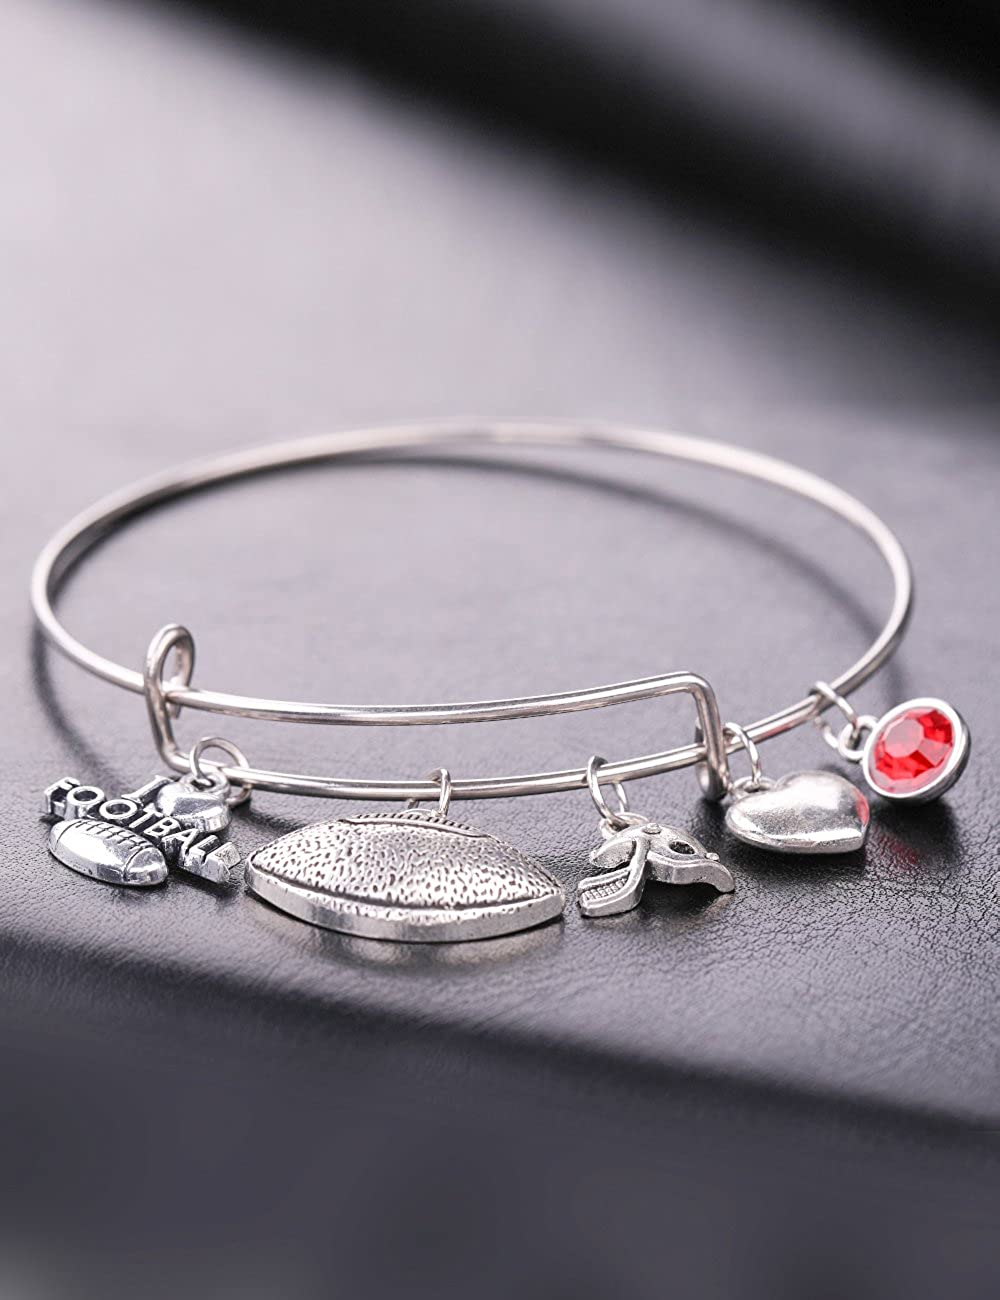 My Shape Fashion I Love Football Wire Bracelet Bangle Birthstone and Helmet Charm Jewelry Gifts for Sports